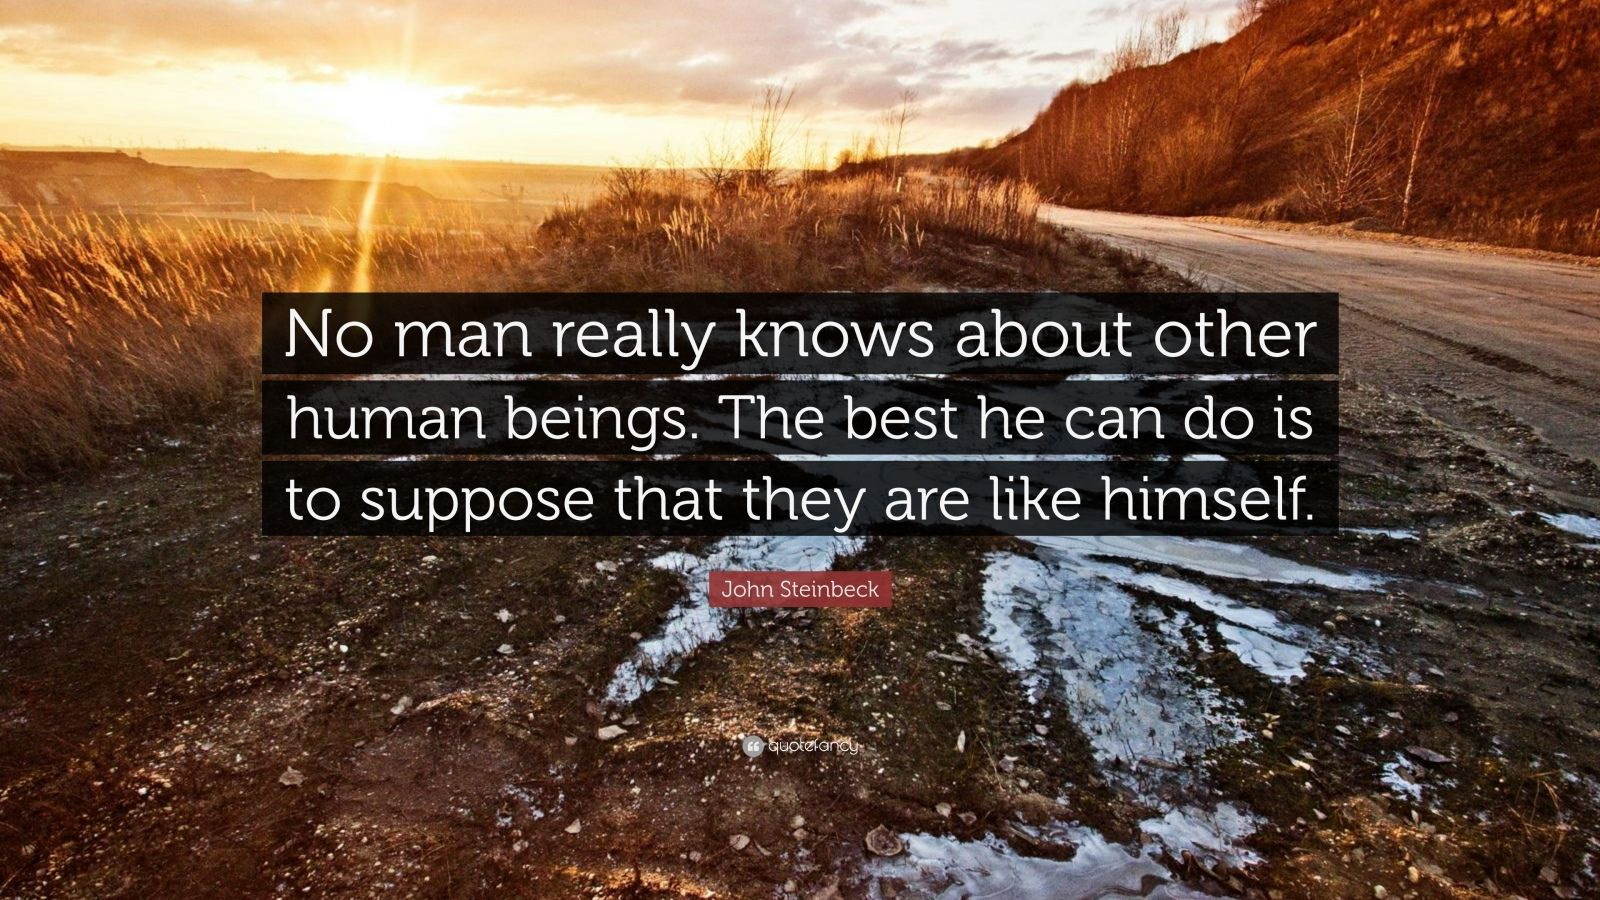 """John Steinbeck Quote: """"No man really knows about other human beings. The best he can do is to suppose that they are like himself."""""""